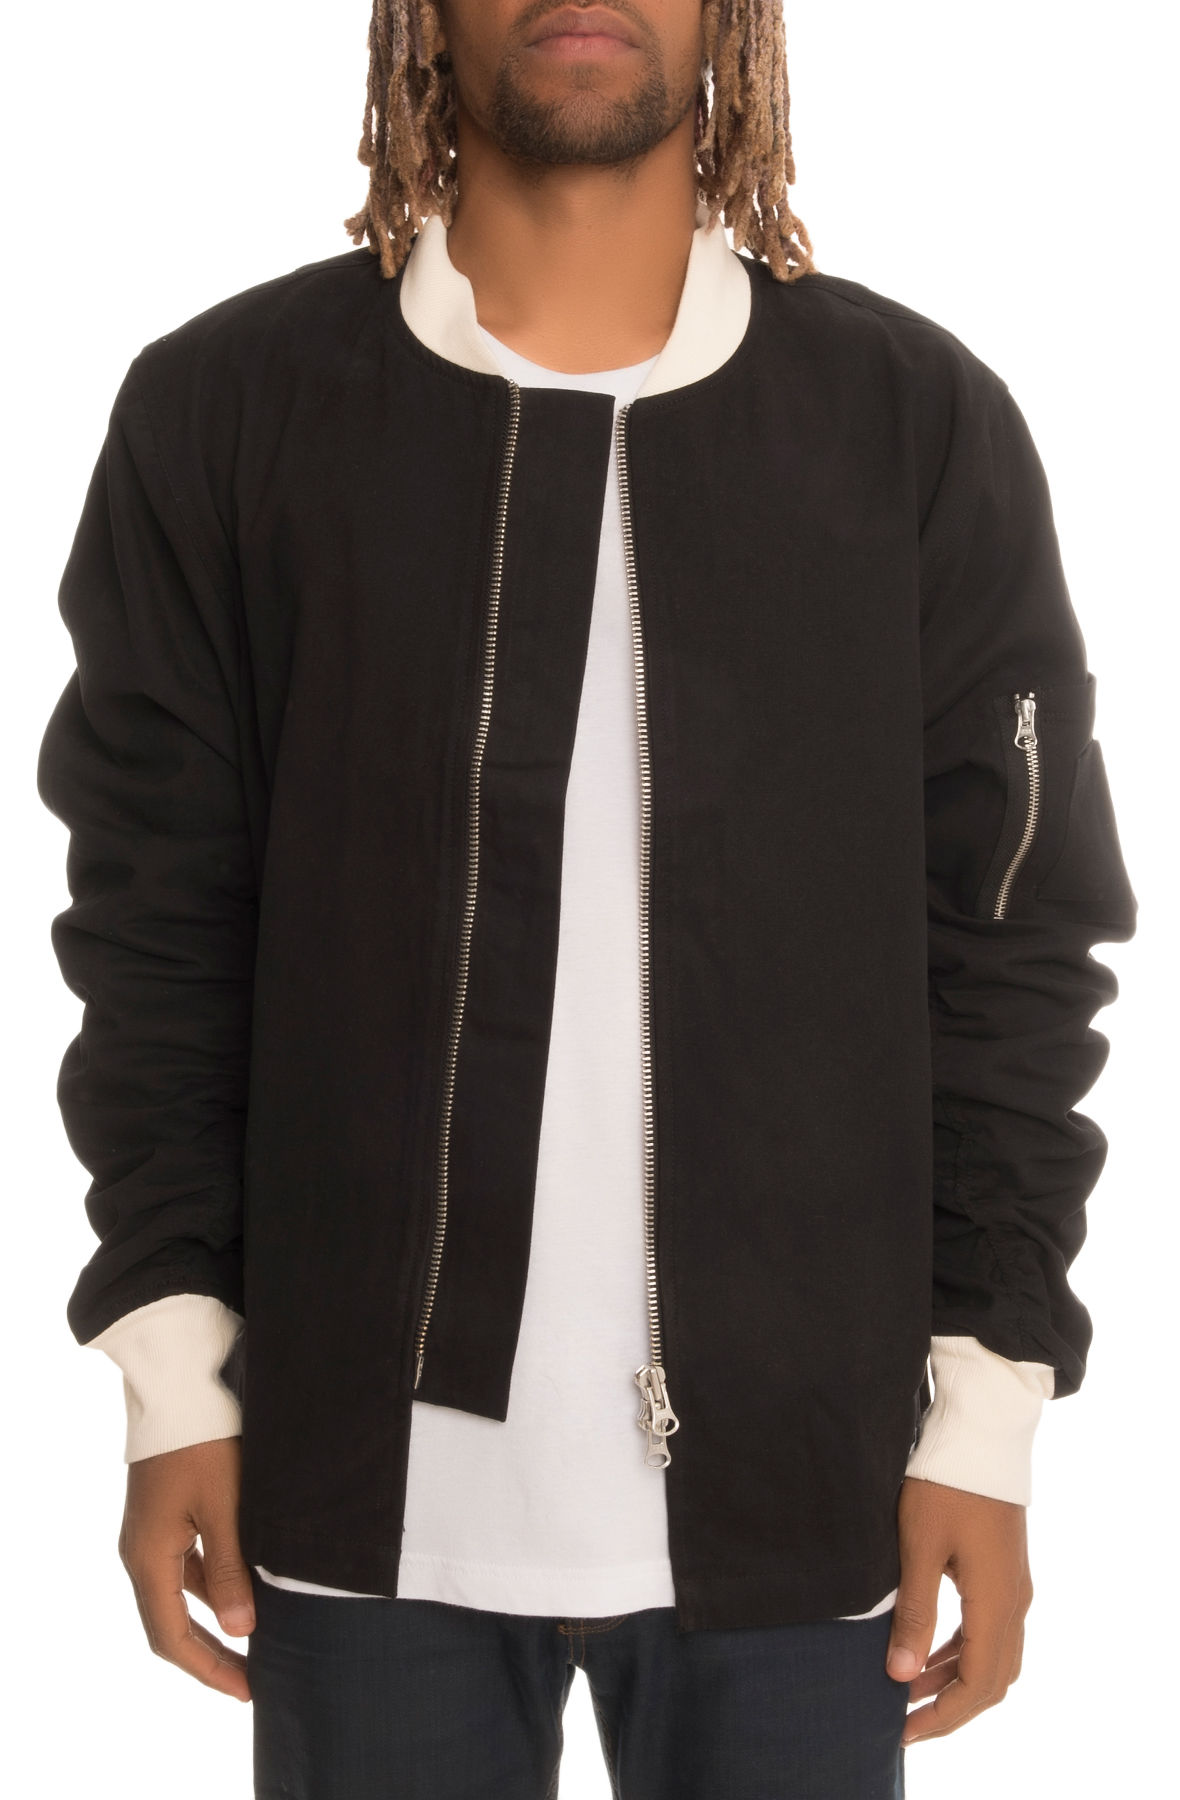 Image of The Longley Extended Bomber with Sleeve Rouching in Black